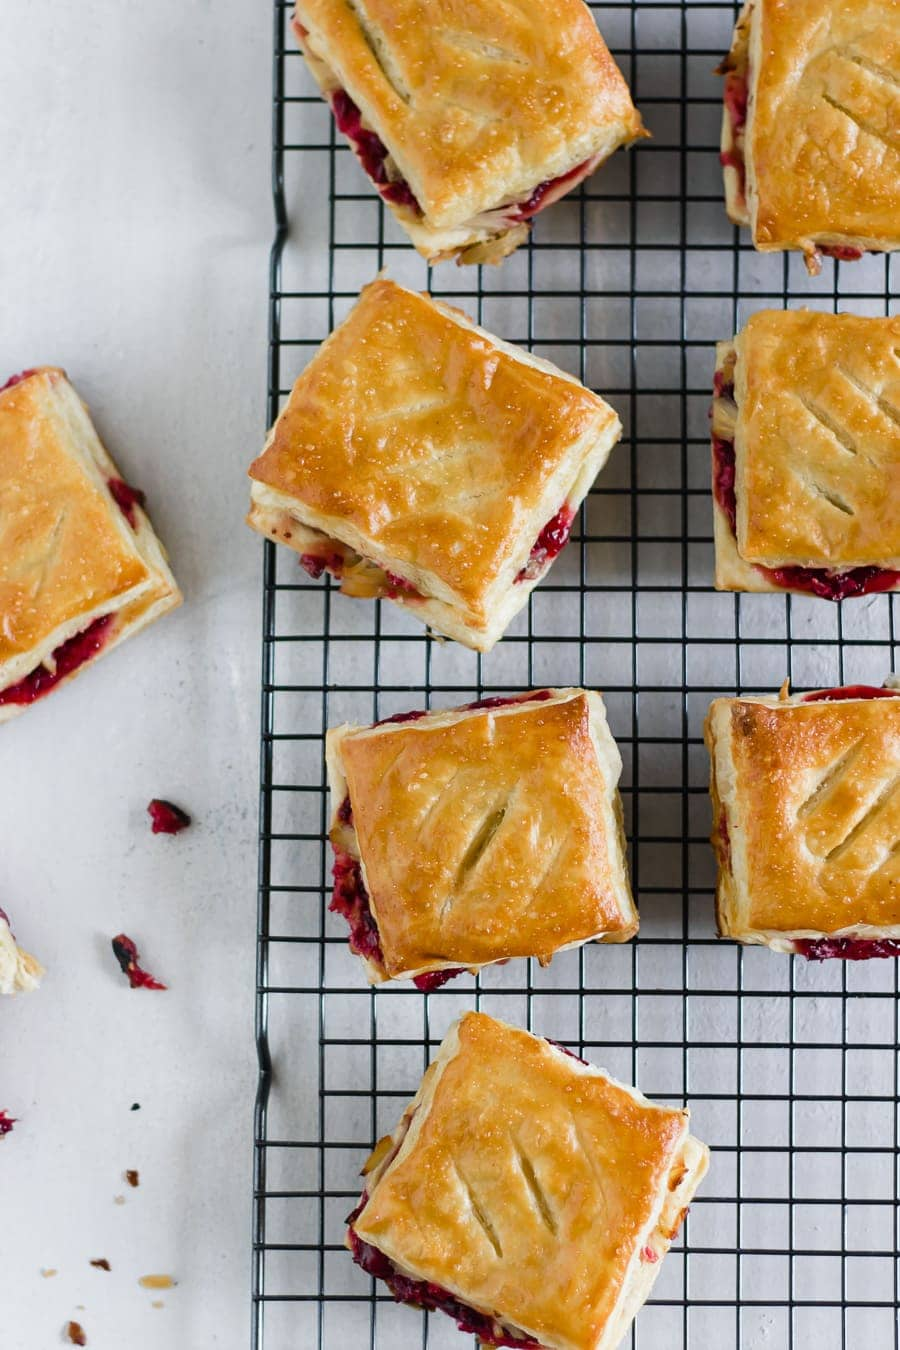 Leftover Cranberry + Turkey Pastries. Repurpose Thanksgiving leftovers by making savory sweet pastelitos (aka pastries or hand pies) using puff pastry sheets!